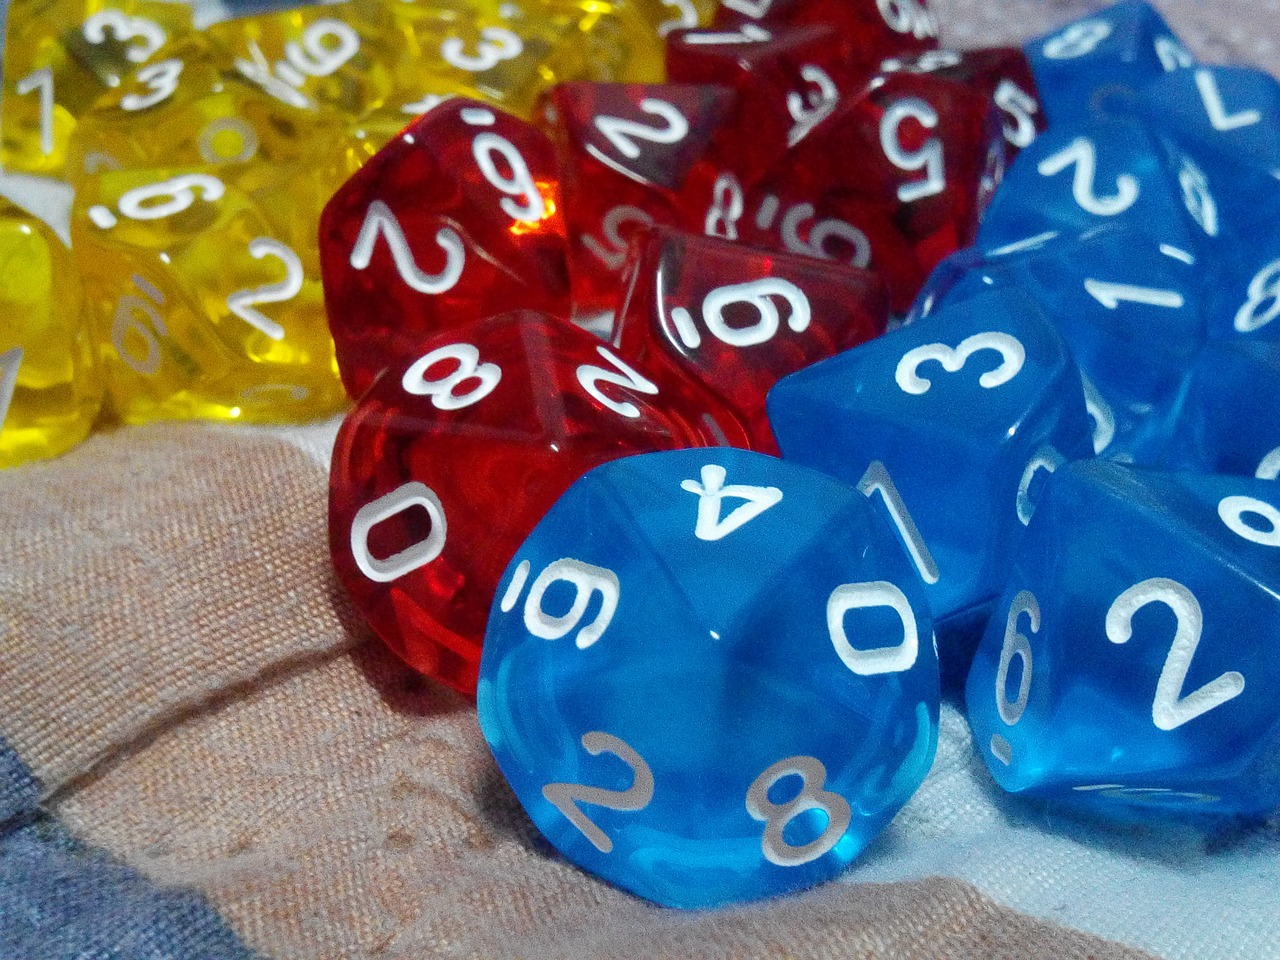 Multi-sided dice - random portfolio generator